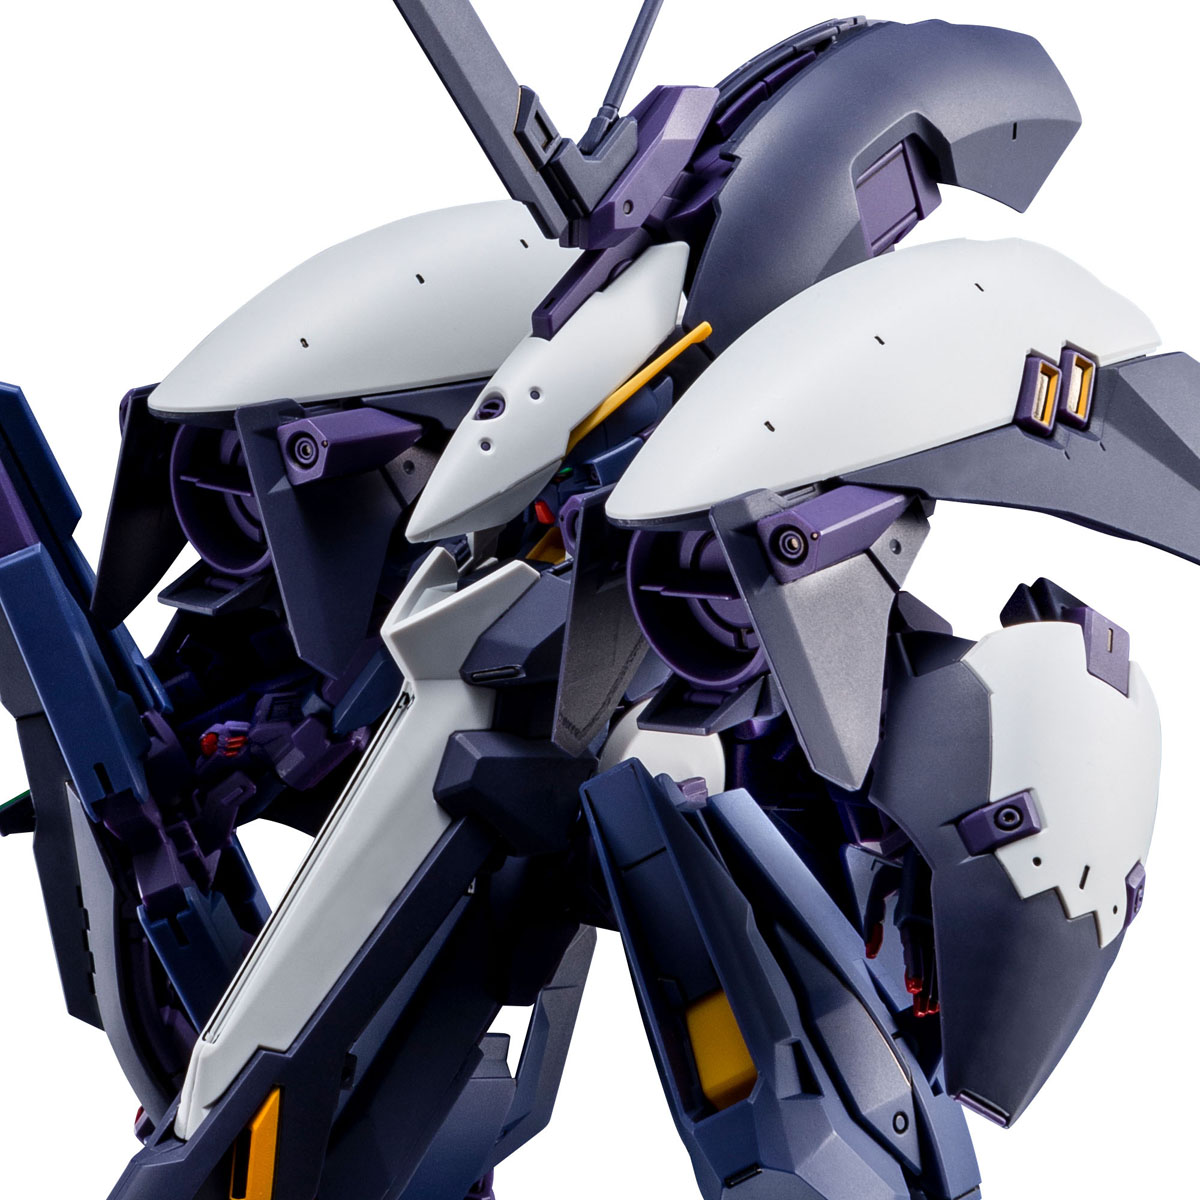 Hg 1 144 Gundam Tr 6 Kehaar Advance Of Z The Flag Of Titans Sep 2020 Delivery Premium Bandai Usa